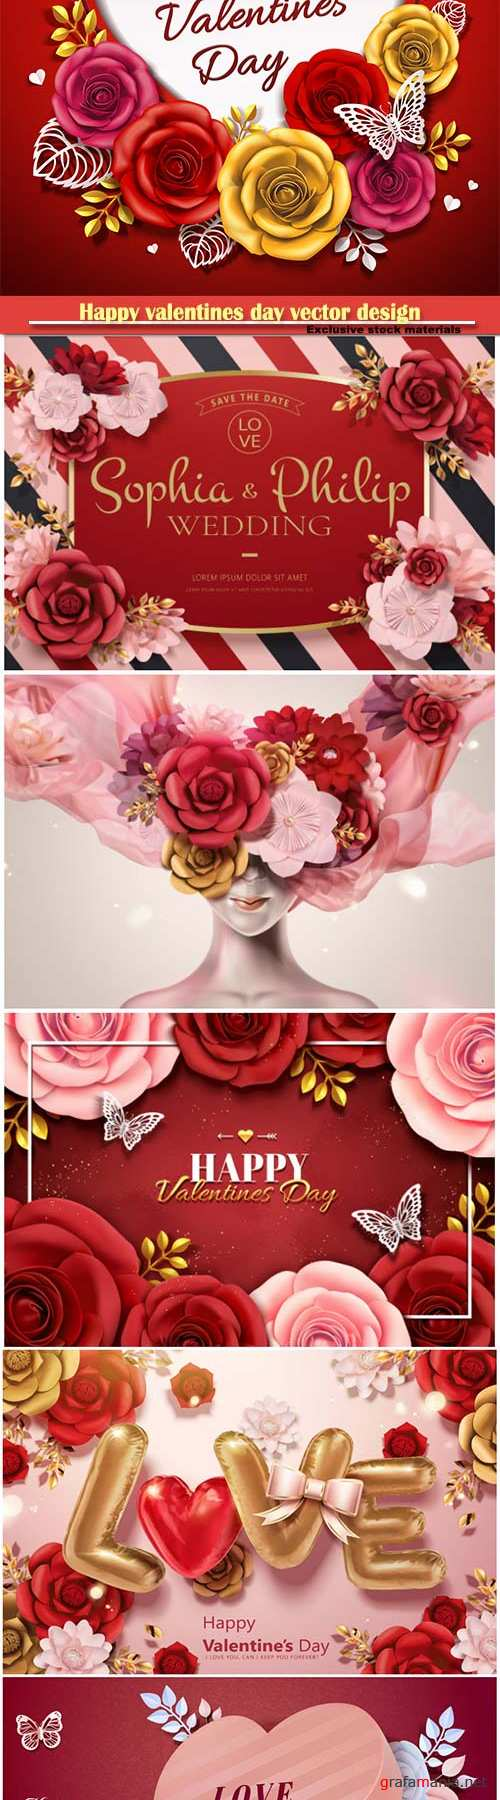 Happy valentines day vector design with heart, balloons, roses in 3d illustration